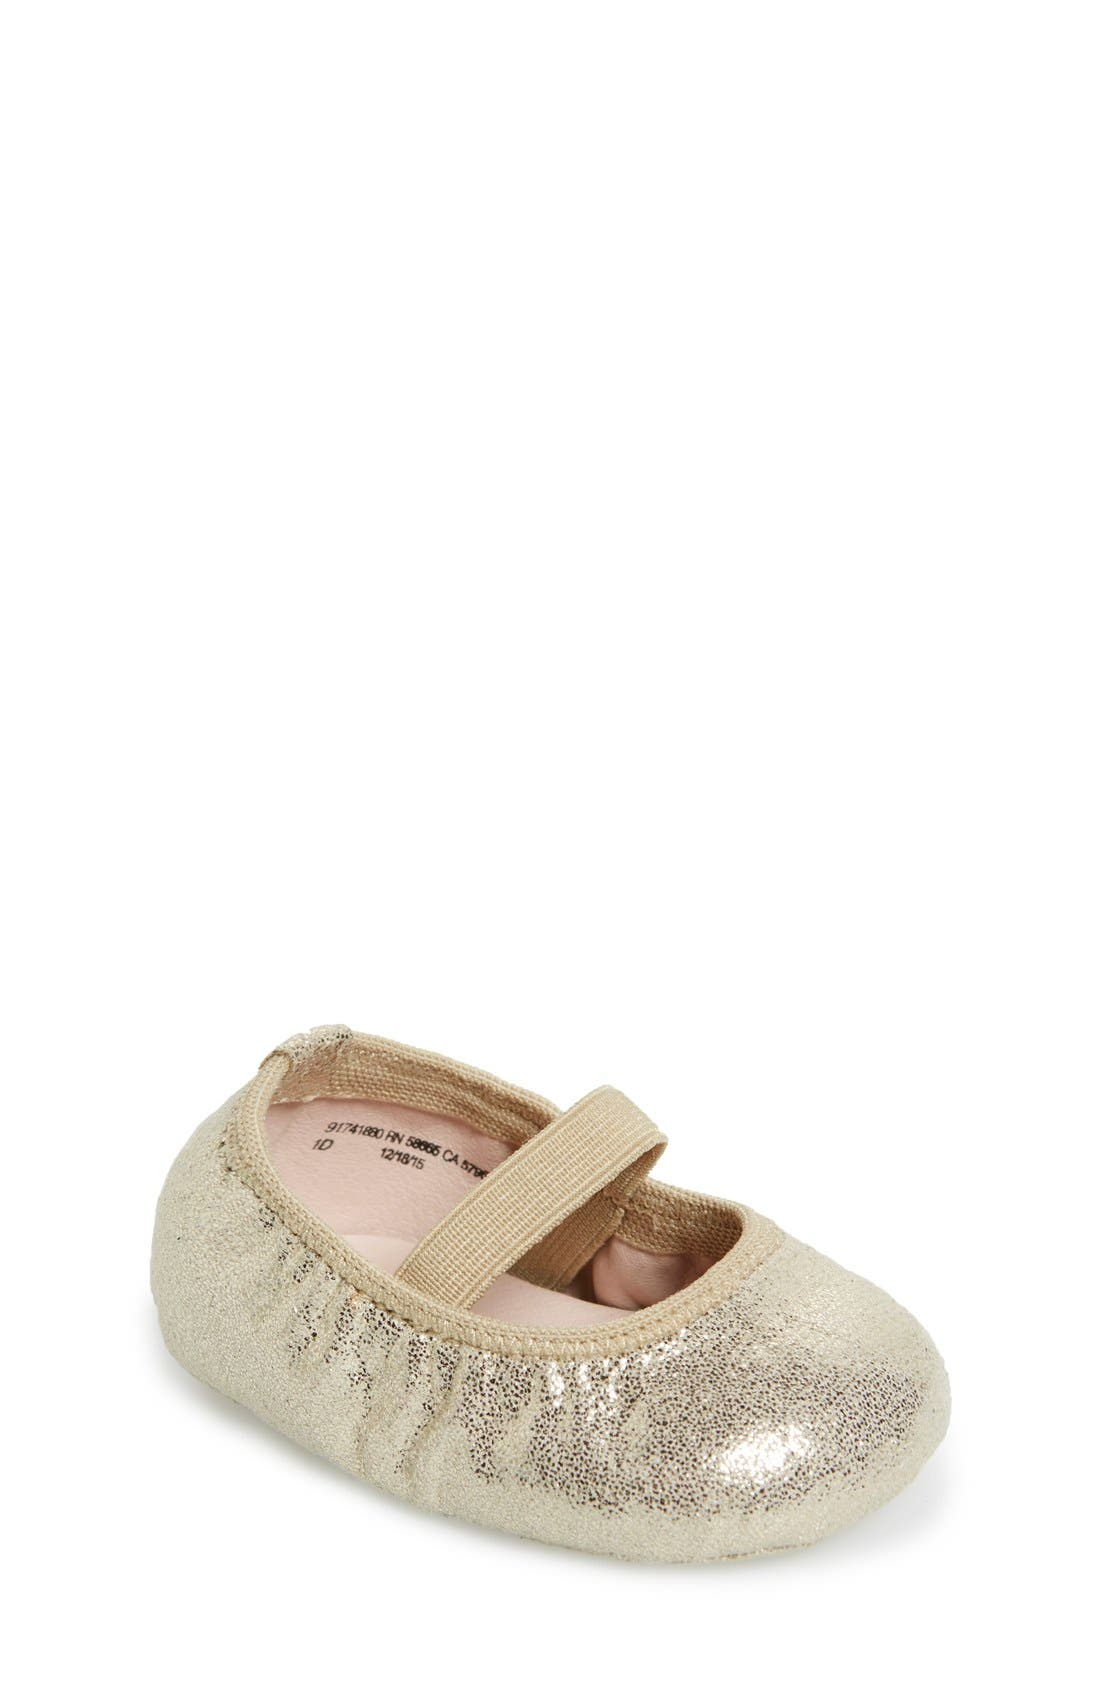 'Josie' Crib Shoe,                         Main,                         color, Gold